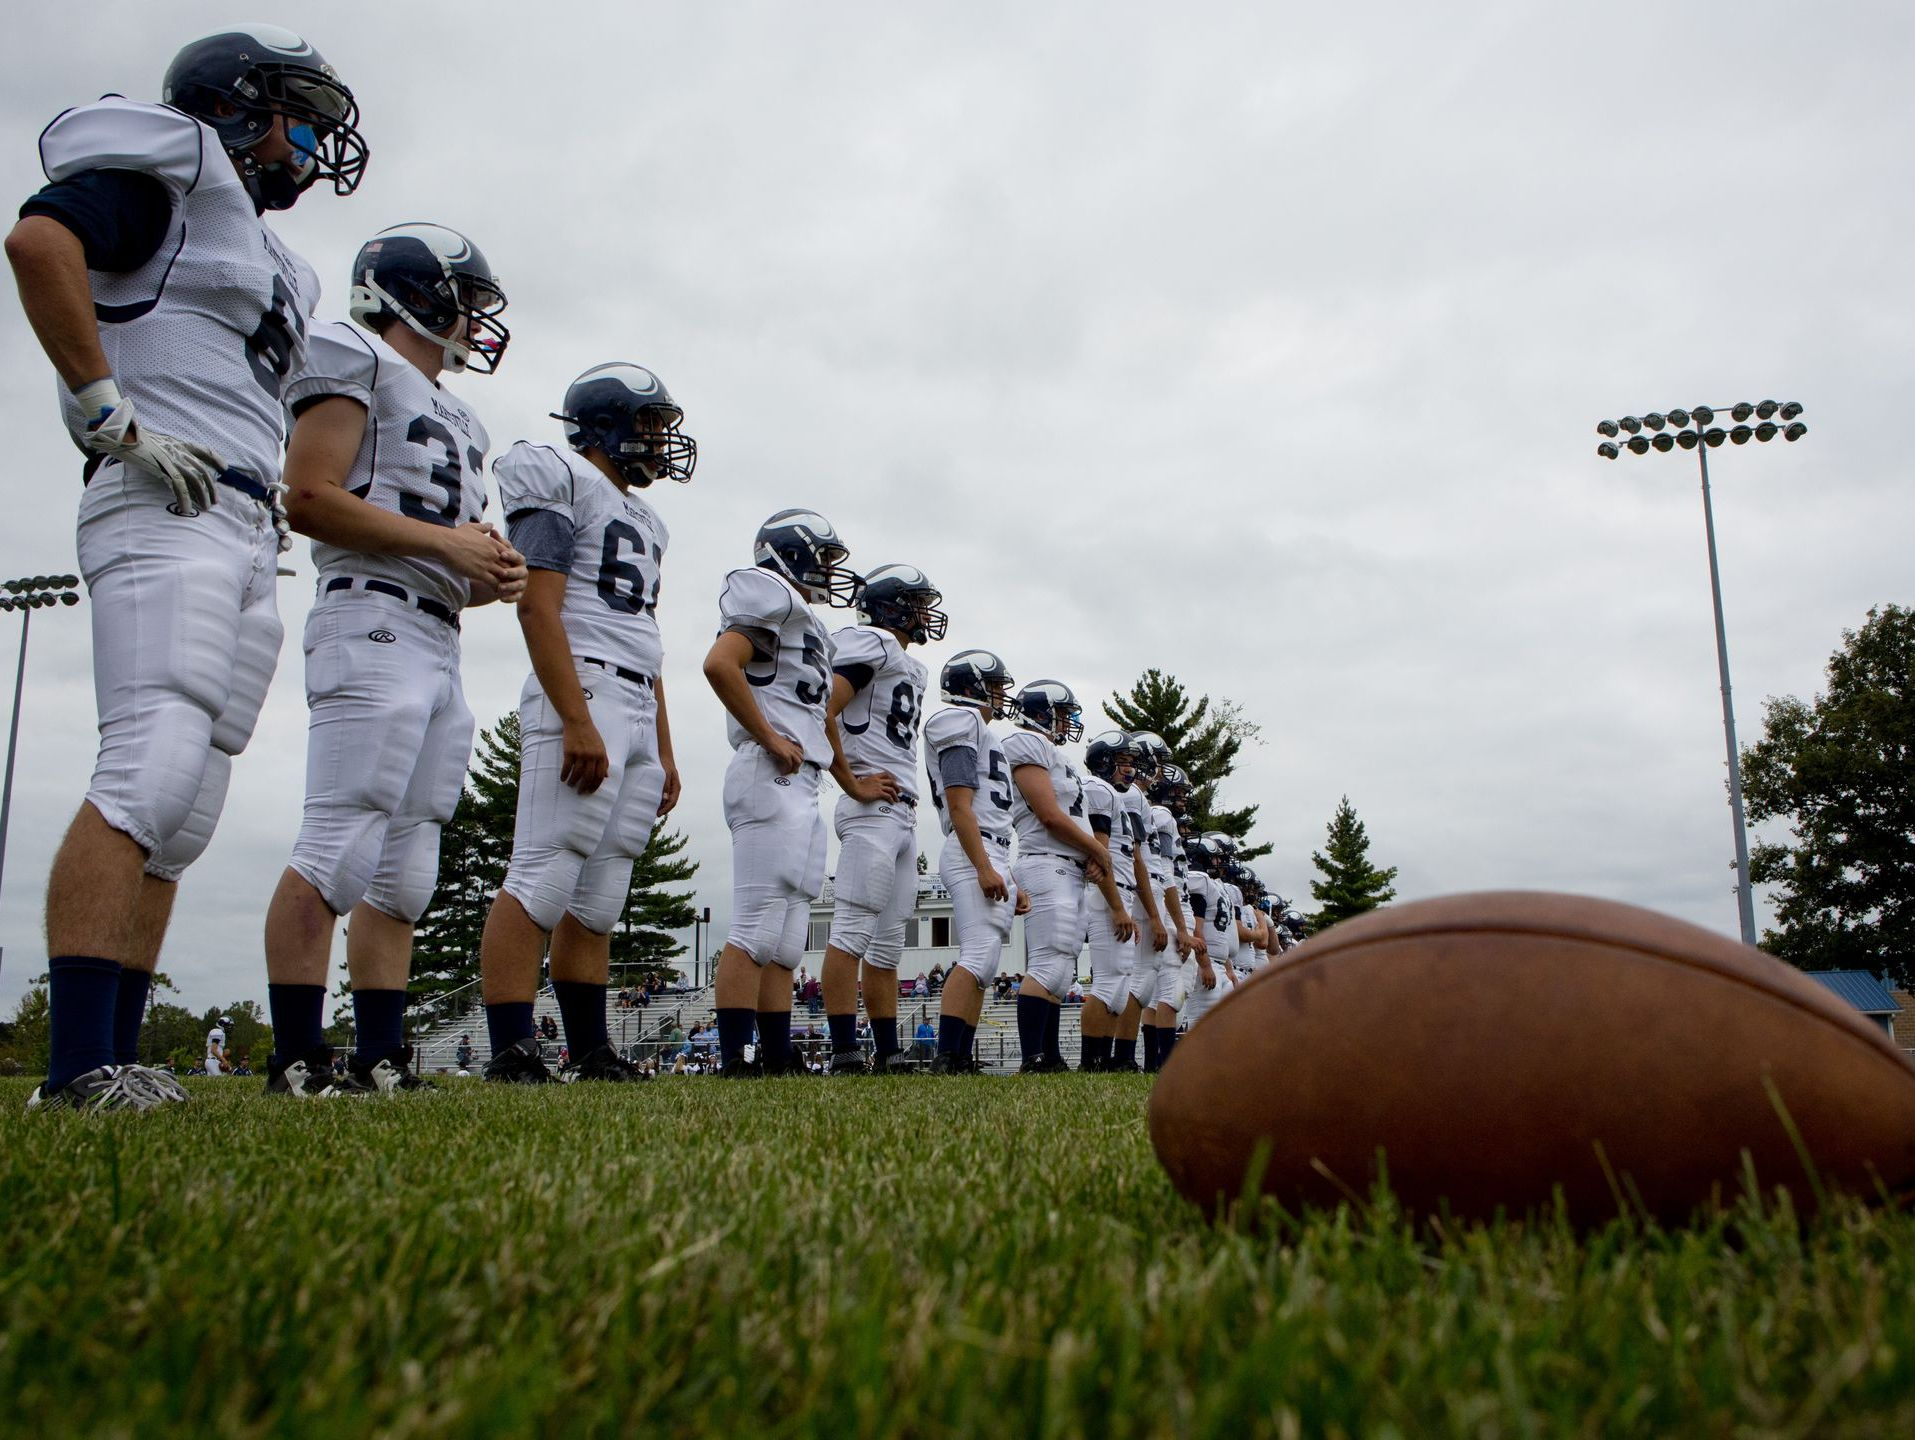 Marysville players line up before a football game Thursday, August 27, 2015 at Richmond High School.